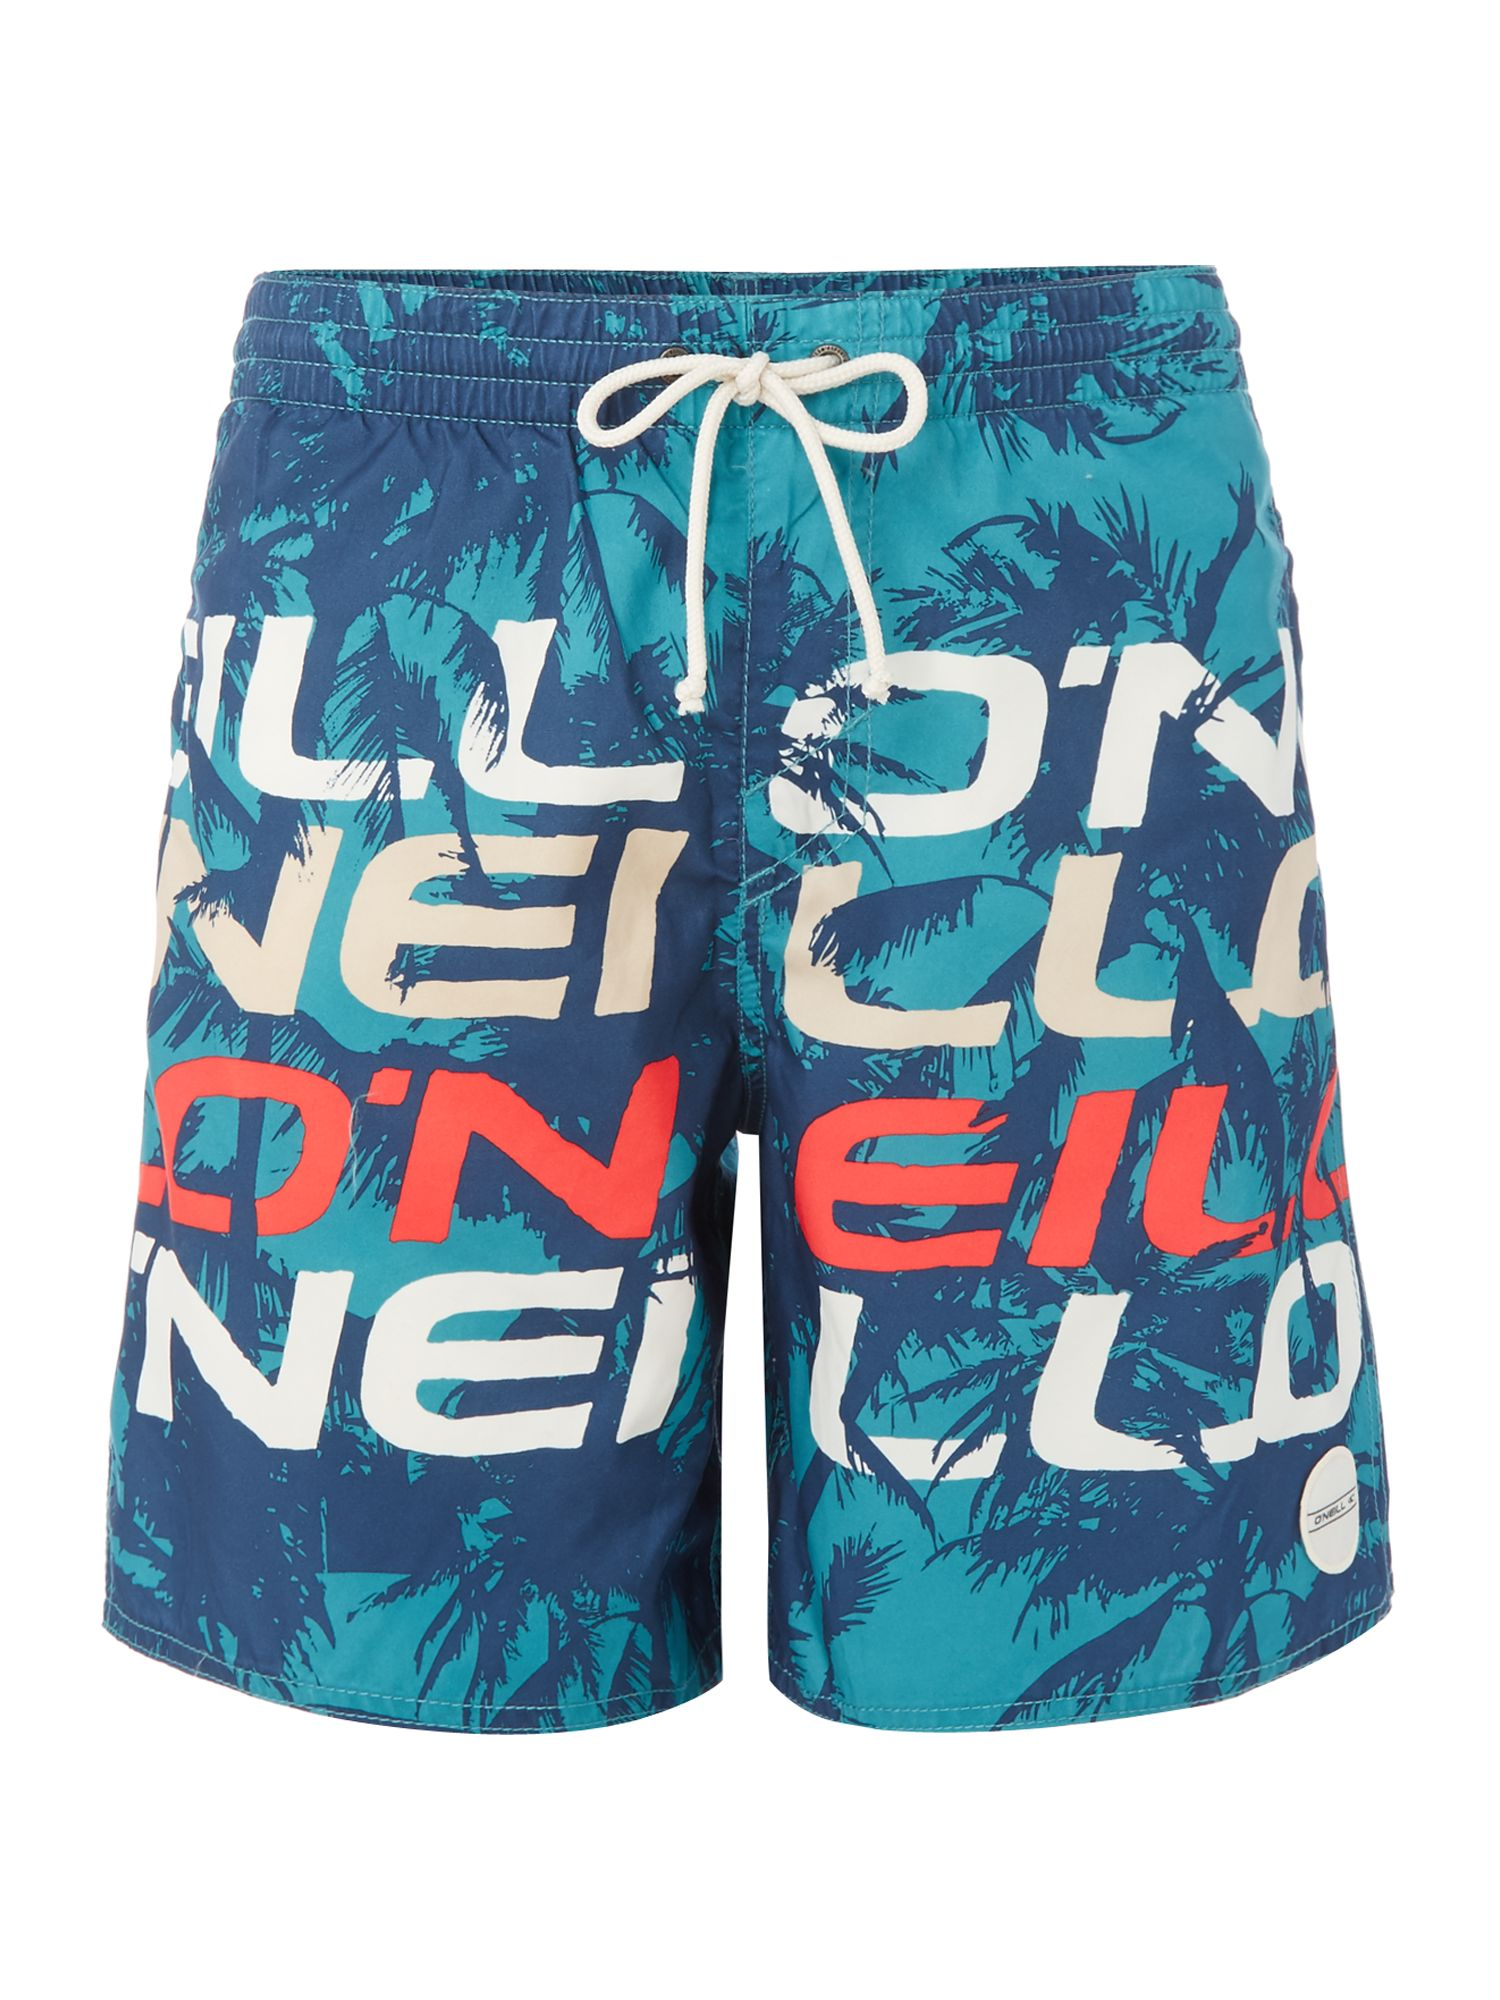 Men's O'Neill Stacked 3 shorts, Green